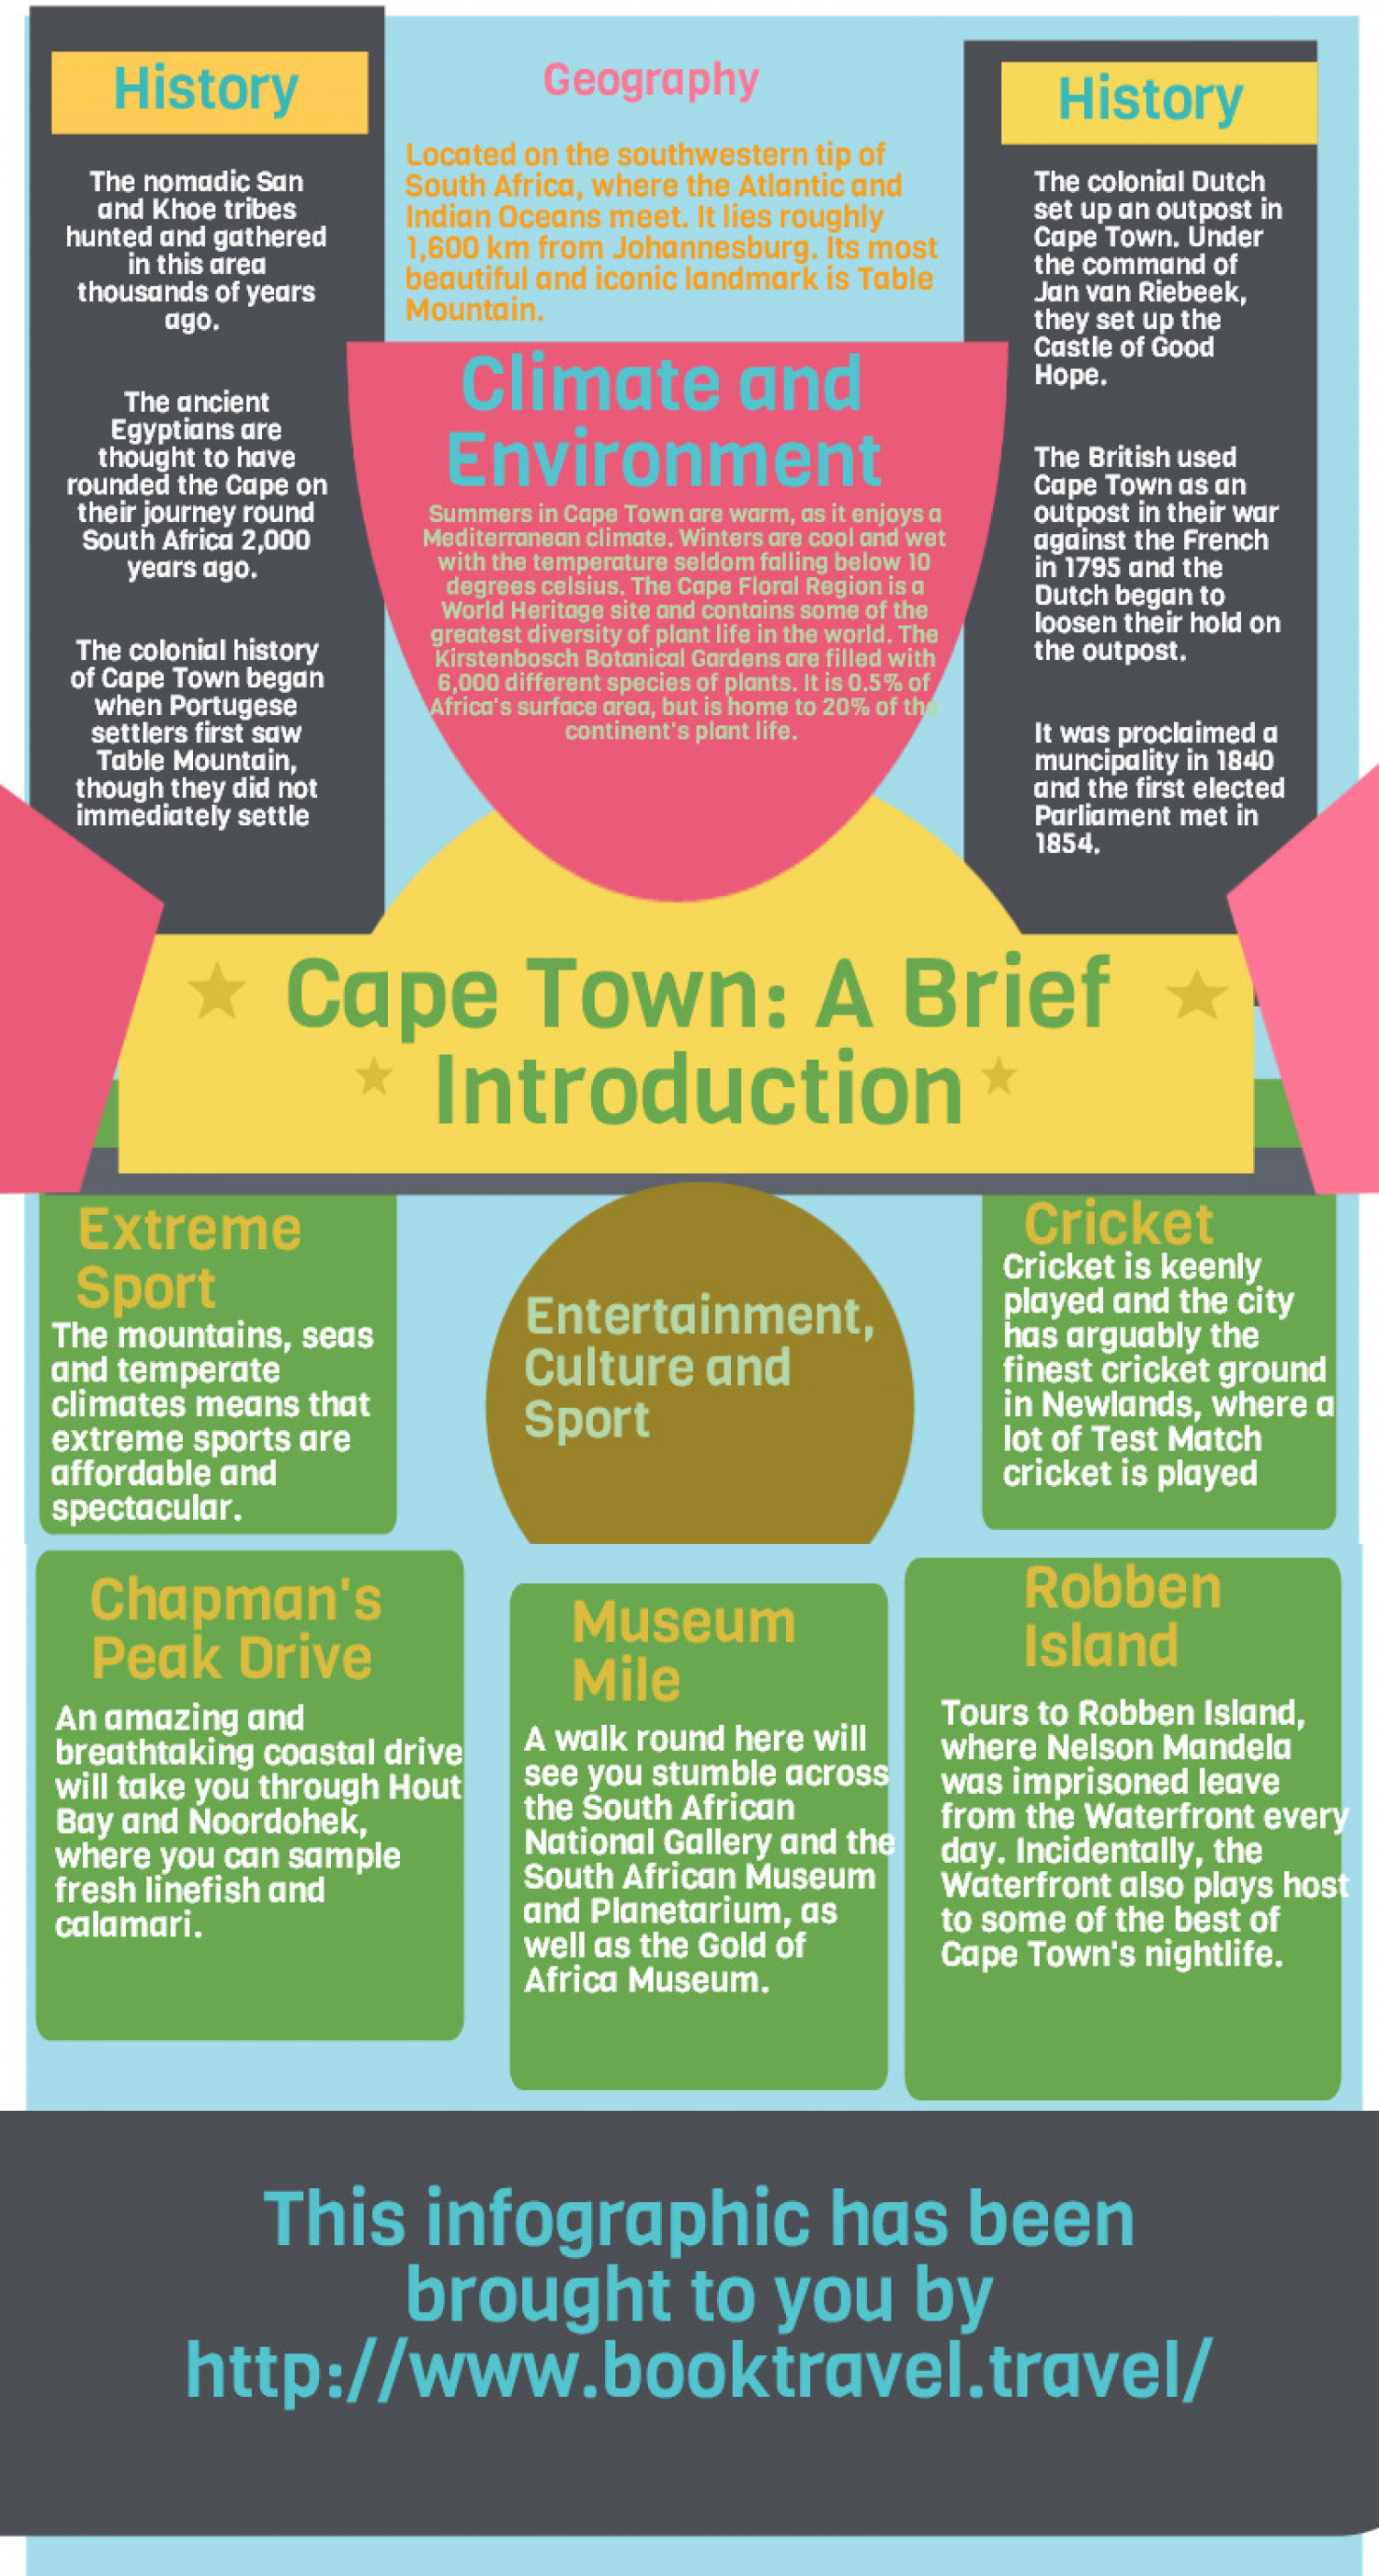 Cape Town: A Brief Introduction Infographic